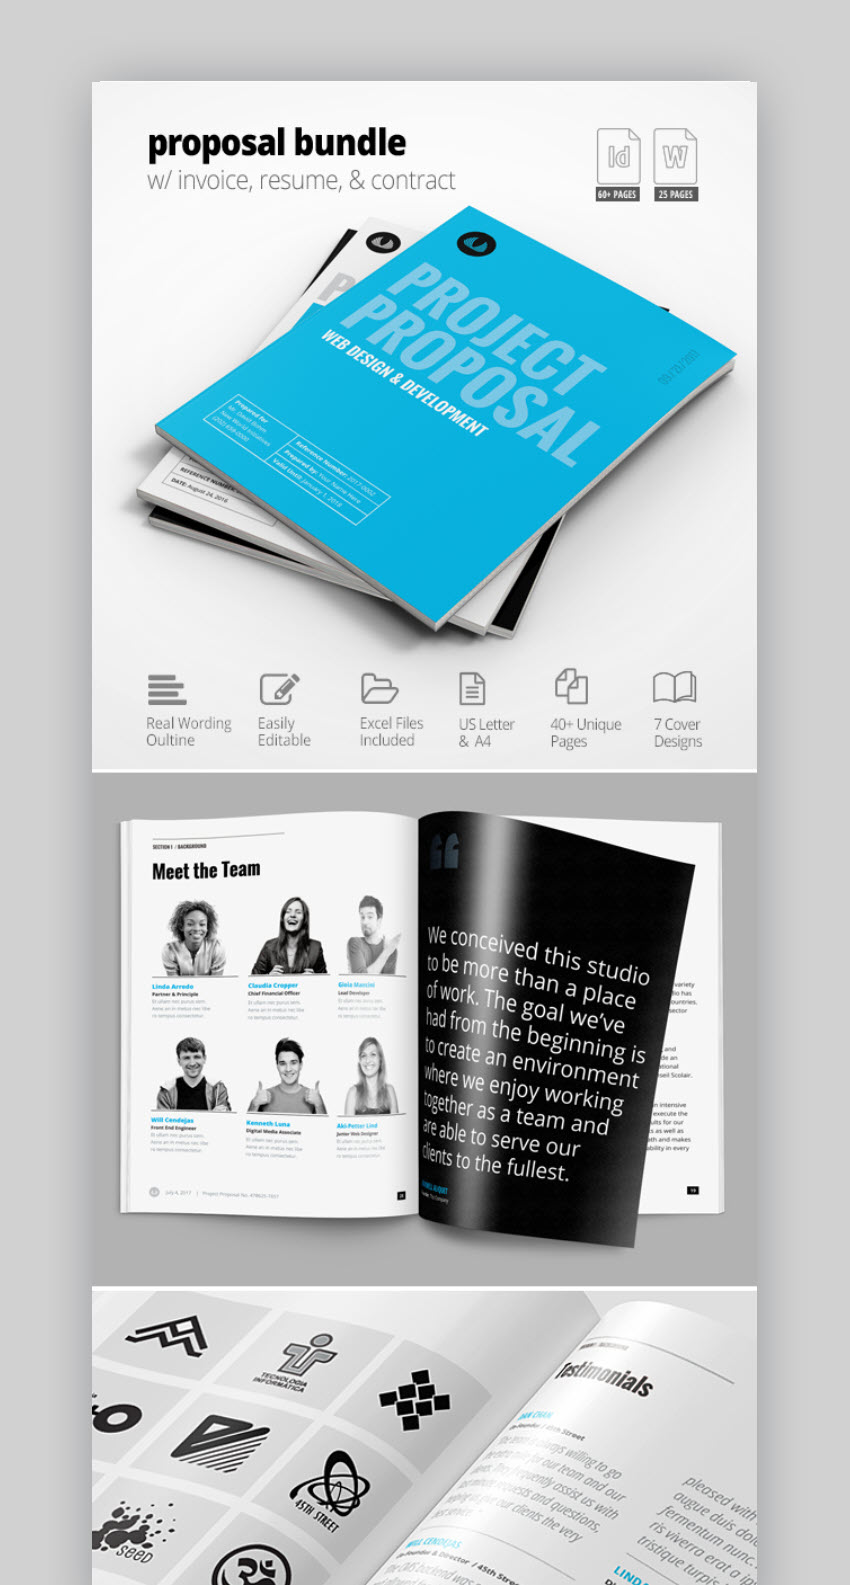 18 professional business project proposal templates for 2018 this is another great project proposal template bundle its full of helpful tools so its also easy to customize and use features include accmission Images